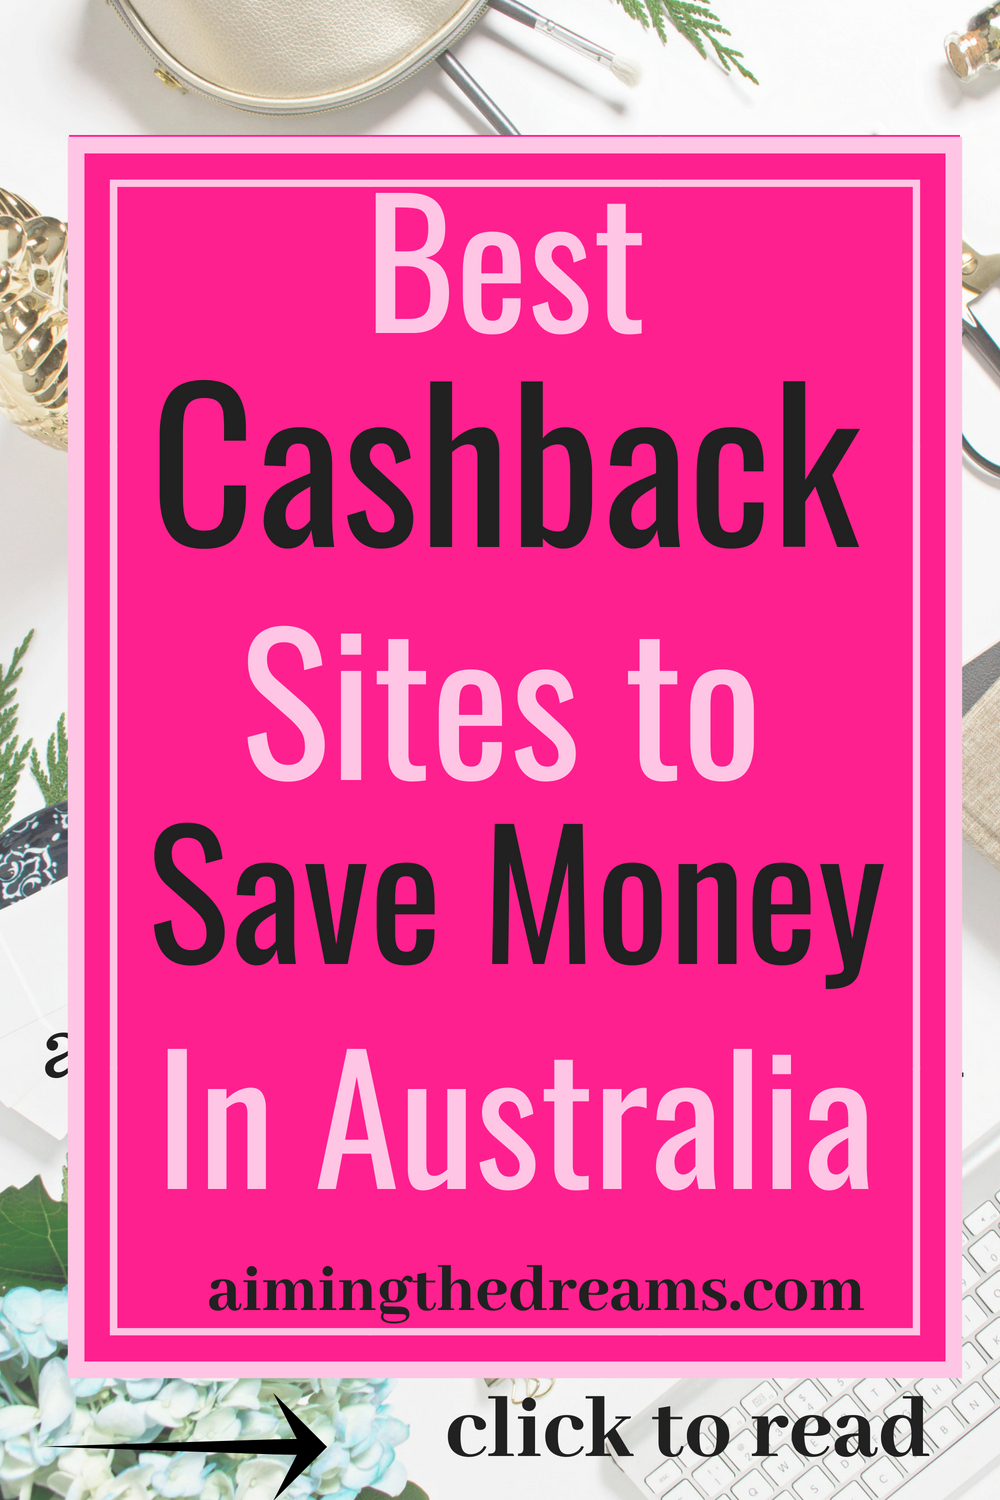 #Cashback #sites and #appps to #make #money in #Australia.Click to read. These sites pay you money back as you #shop #online through these.